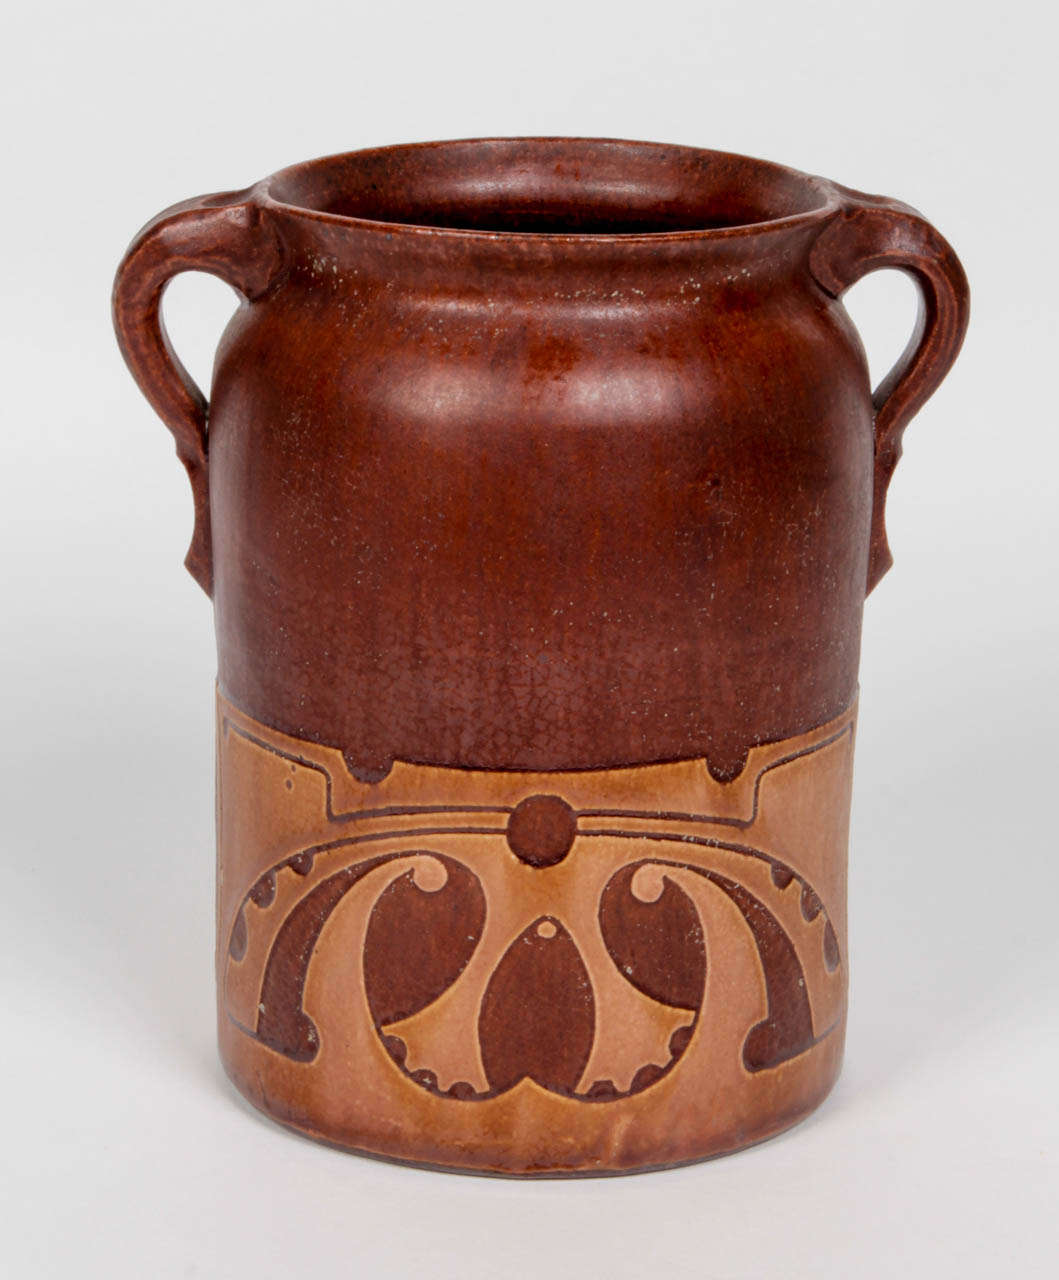 Willem brouwer dutch art nouveau or arts and crafts for Arts and crafts vases pottery